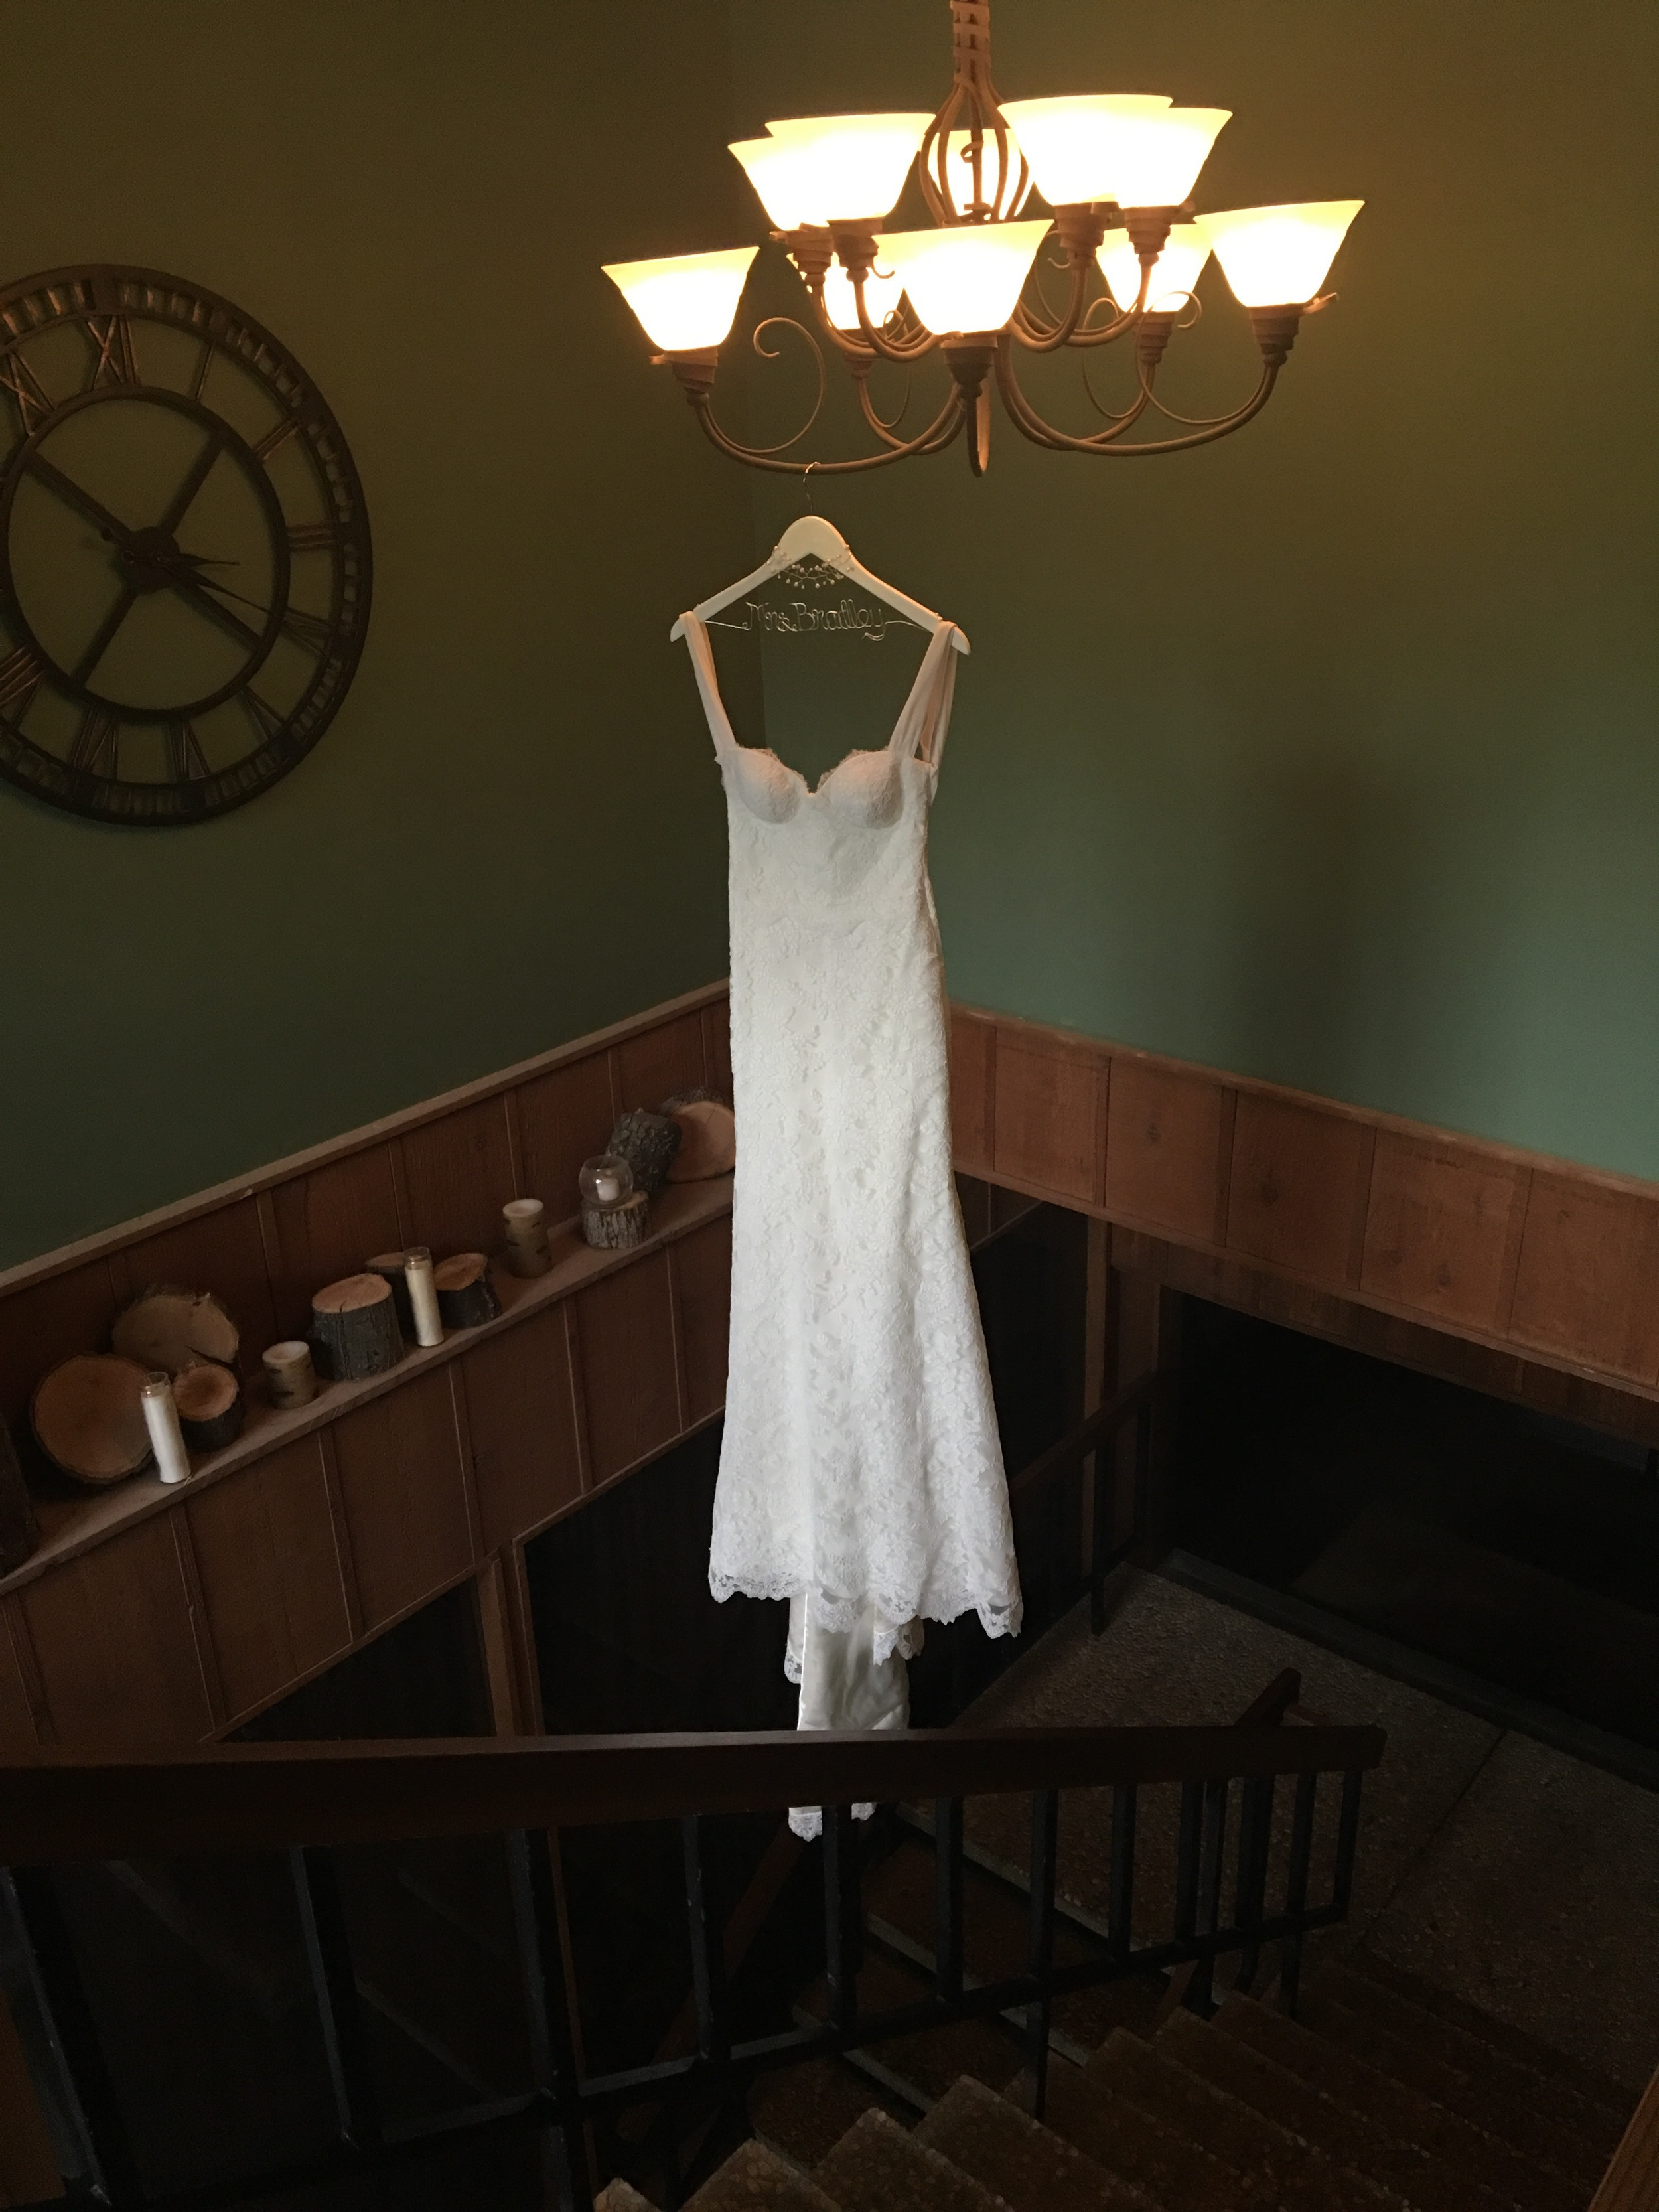 I had to ask the owners of the SVR if the ceiling was stable enough to hold the dress in place.